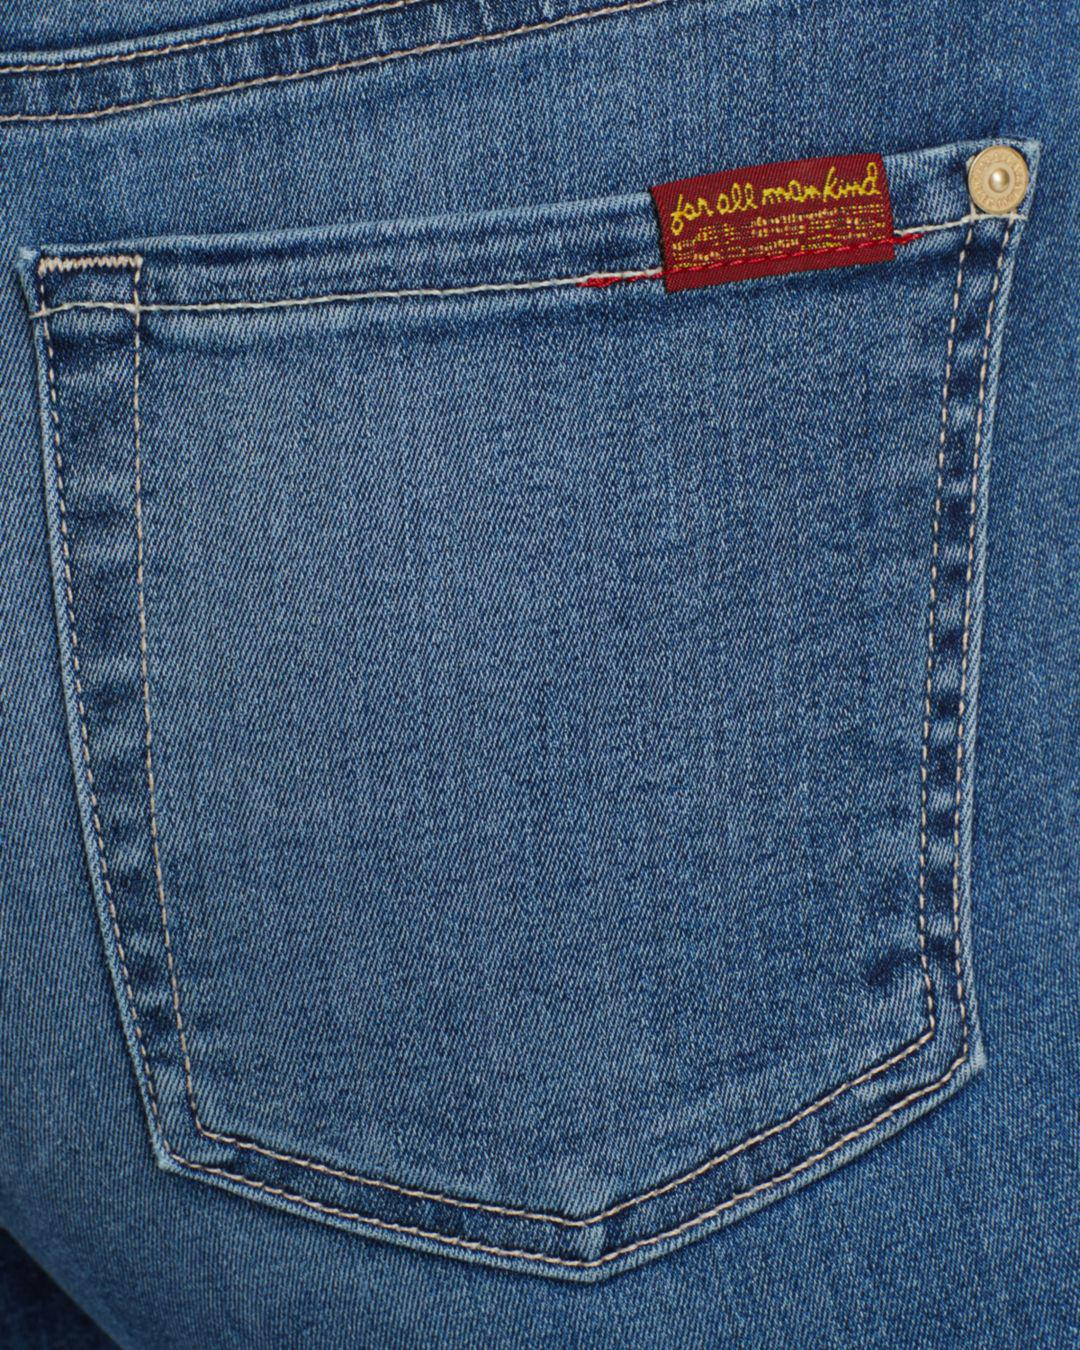 7 For All Mankind Denim B(air) The Ankle Skinny Jeans In Sunset in Blue